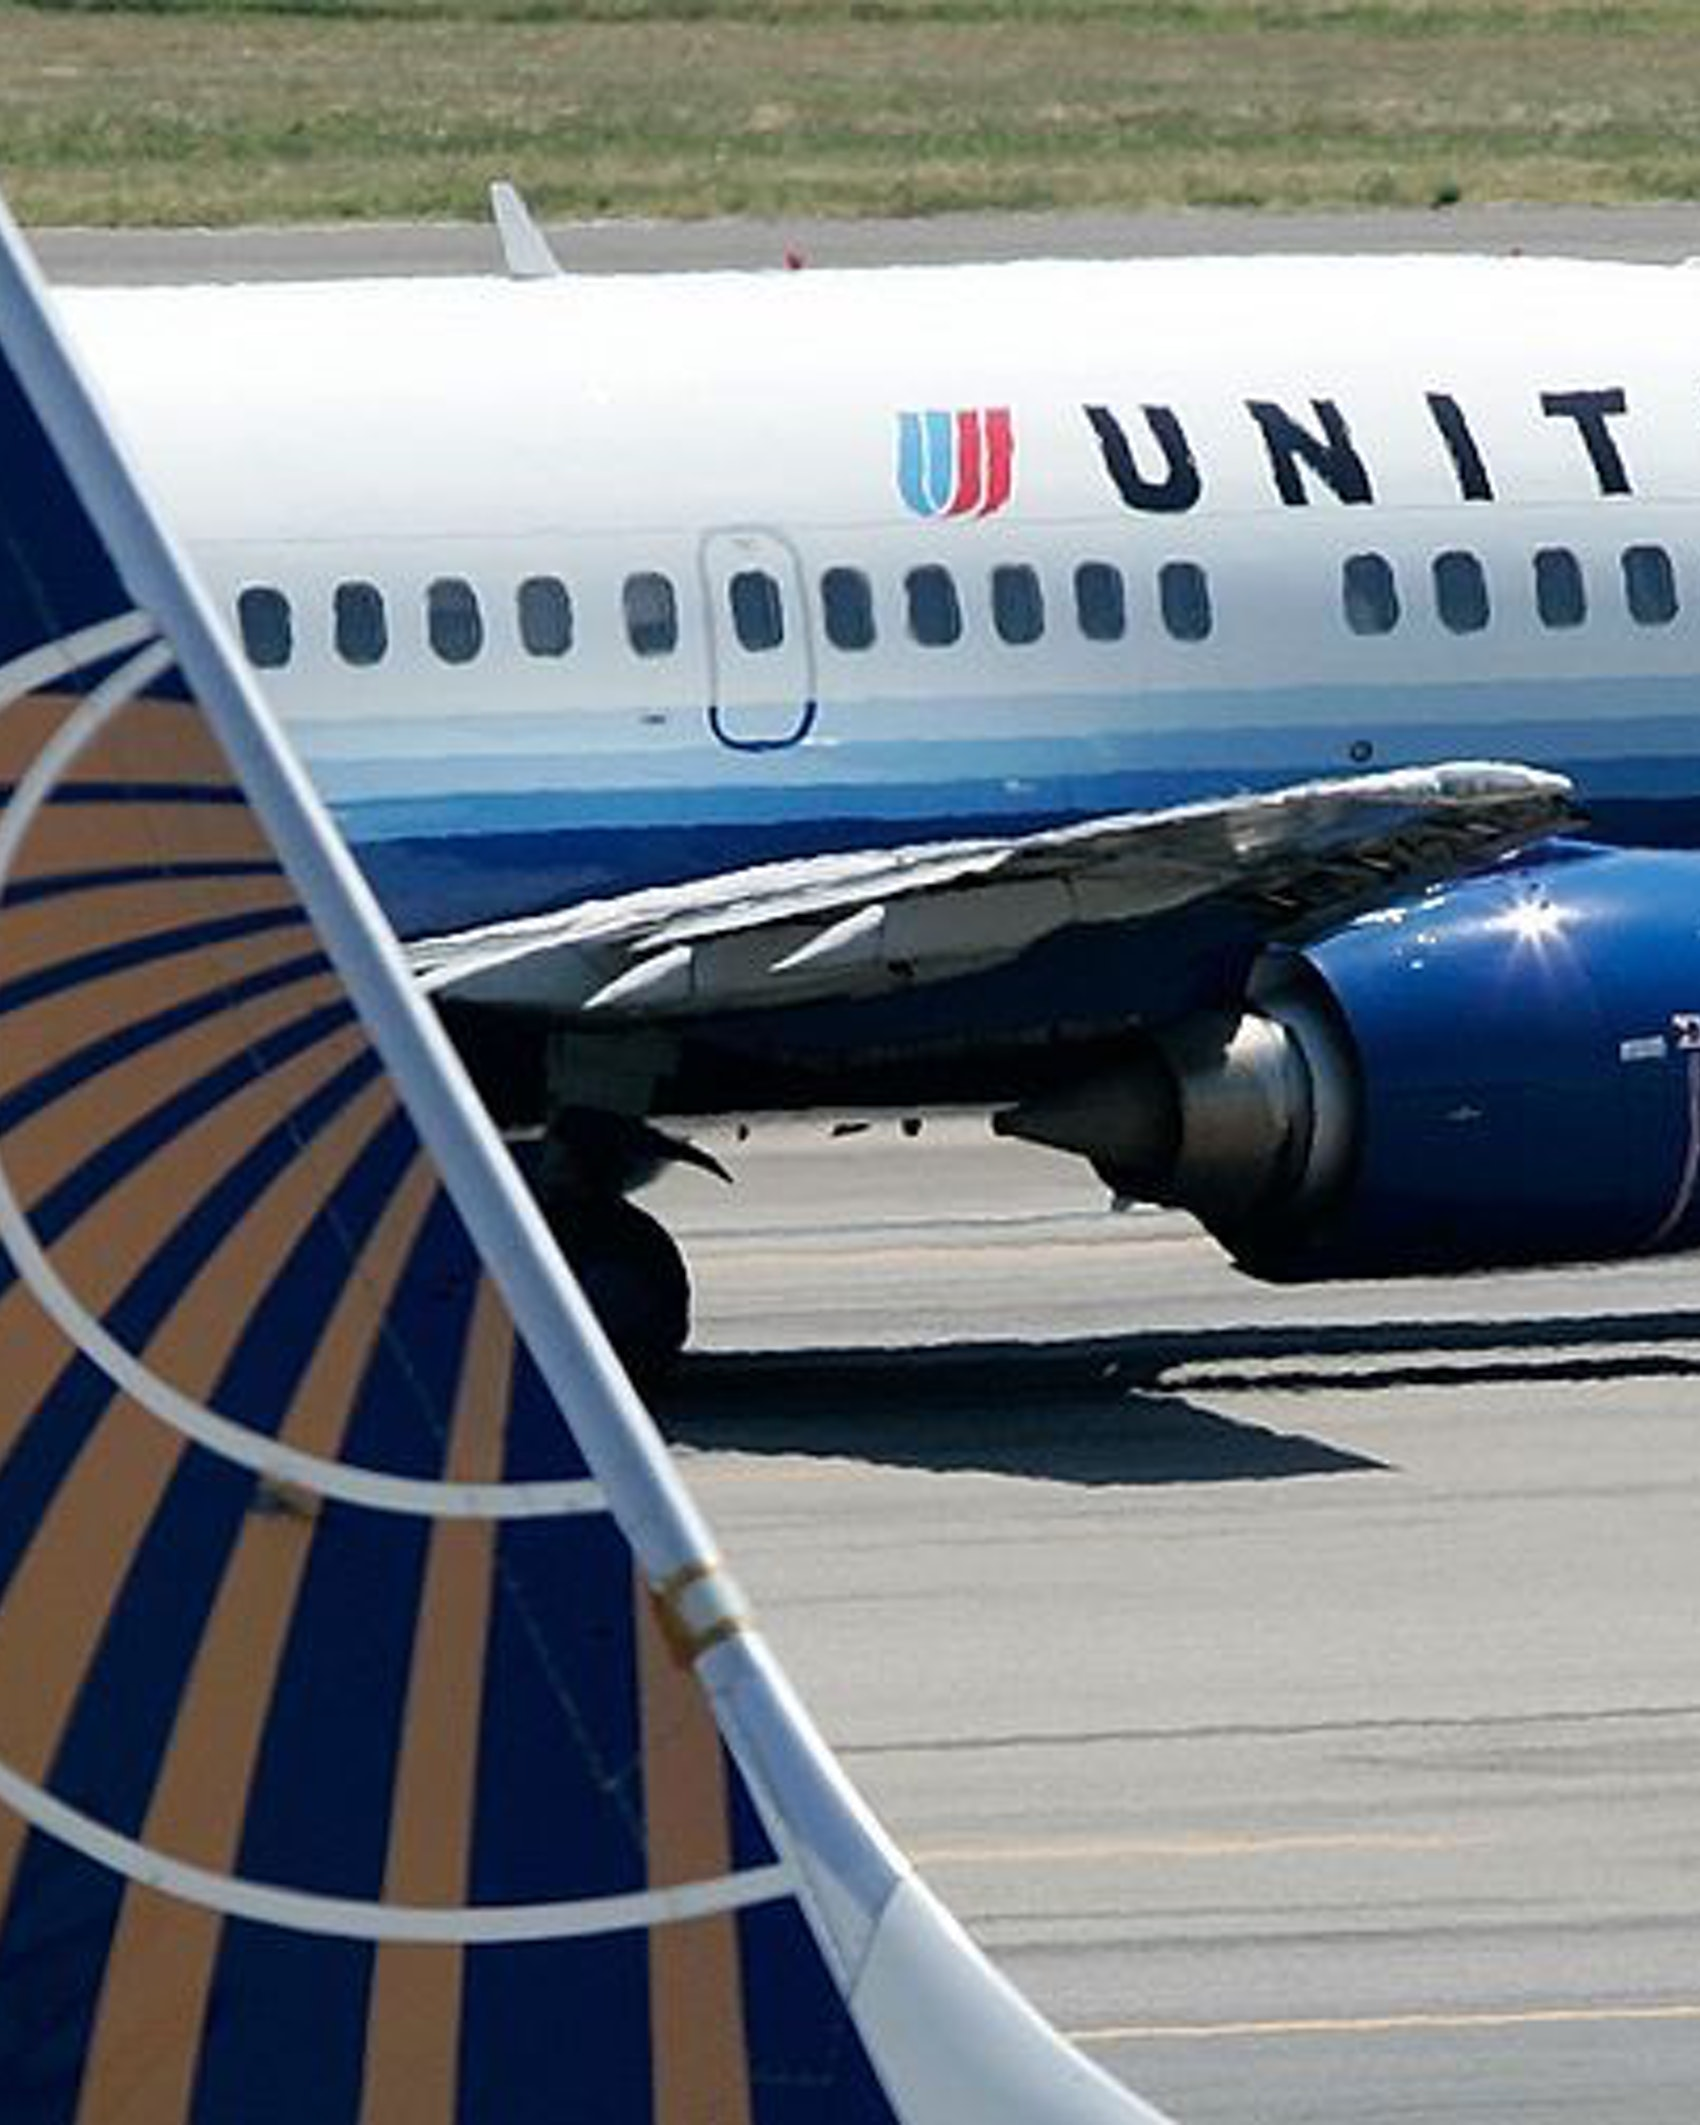 A United Airlines aircraft passes by a Continental Airlines aircraft as it taxis to takeoff from the runway of Ronald Reagan National Airport August 16, 2006 in Washington, DC. (Photo by Alex Wong/Getty Images)